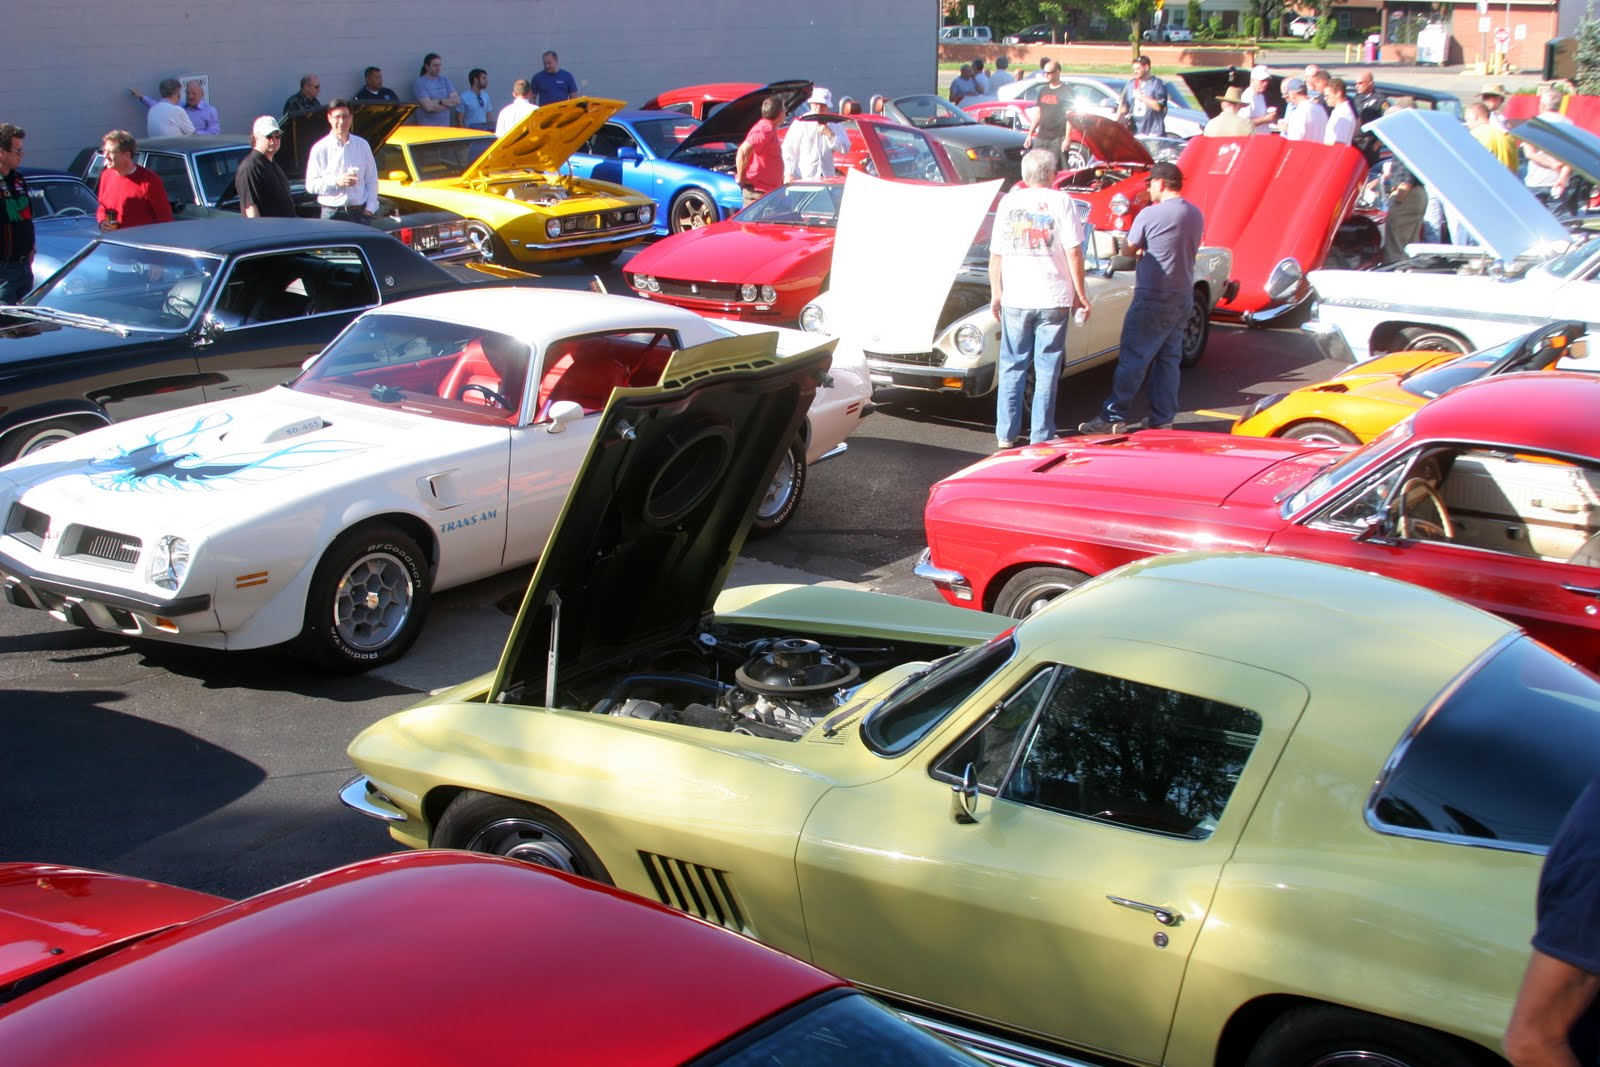 car shows every weekend,